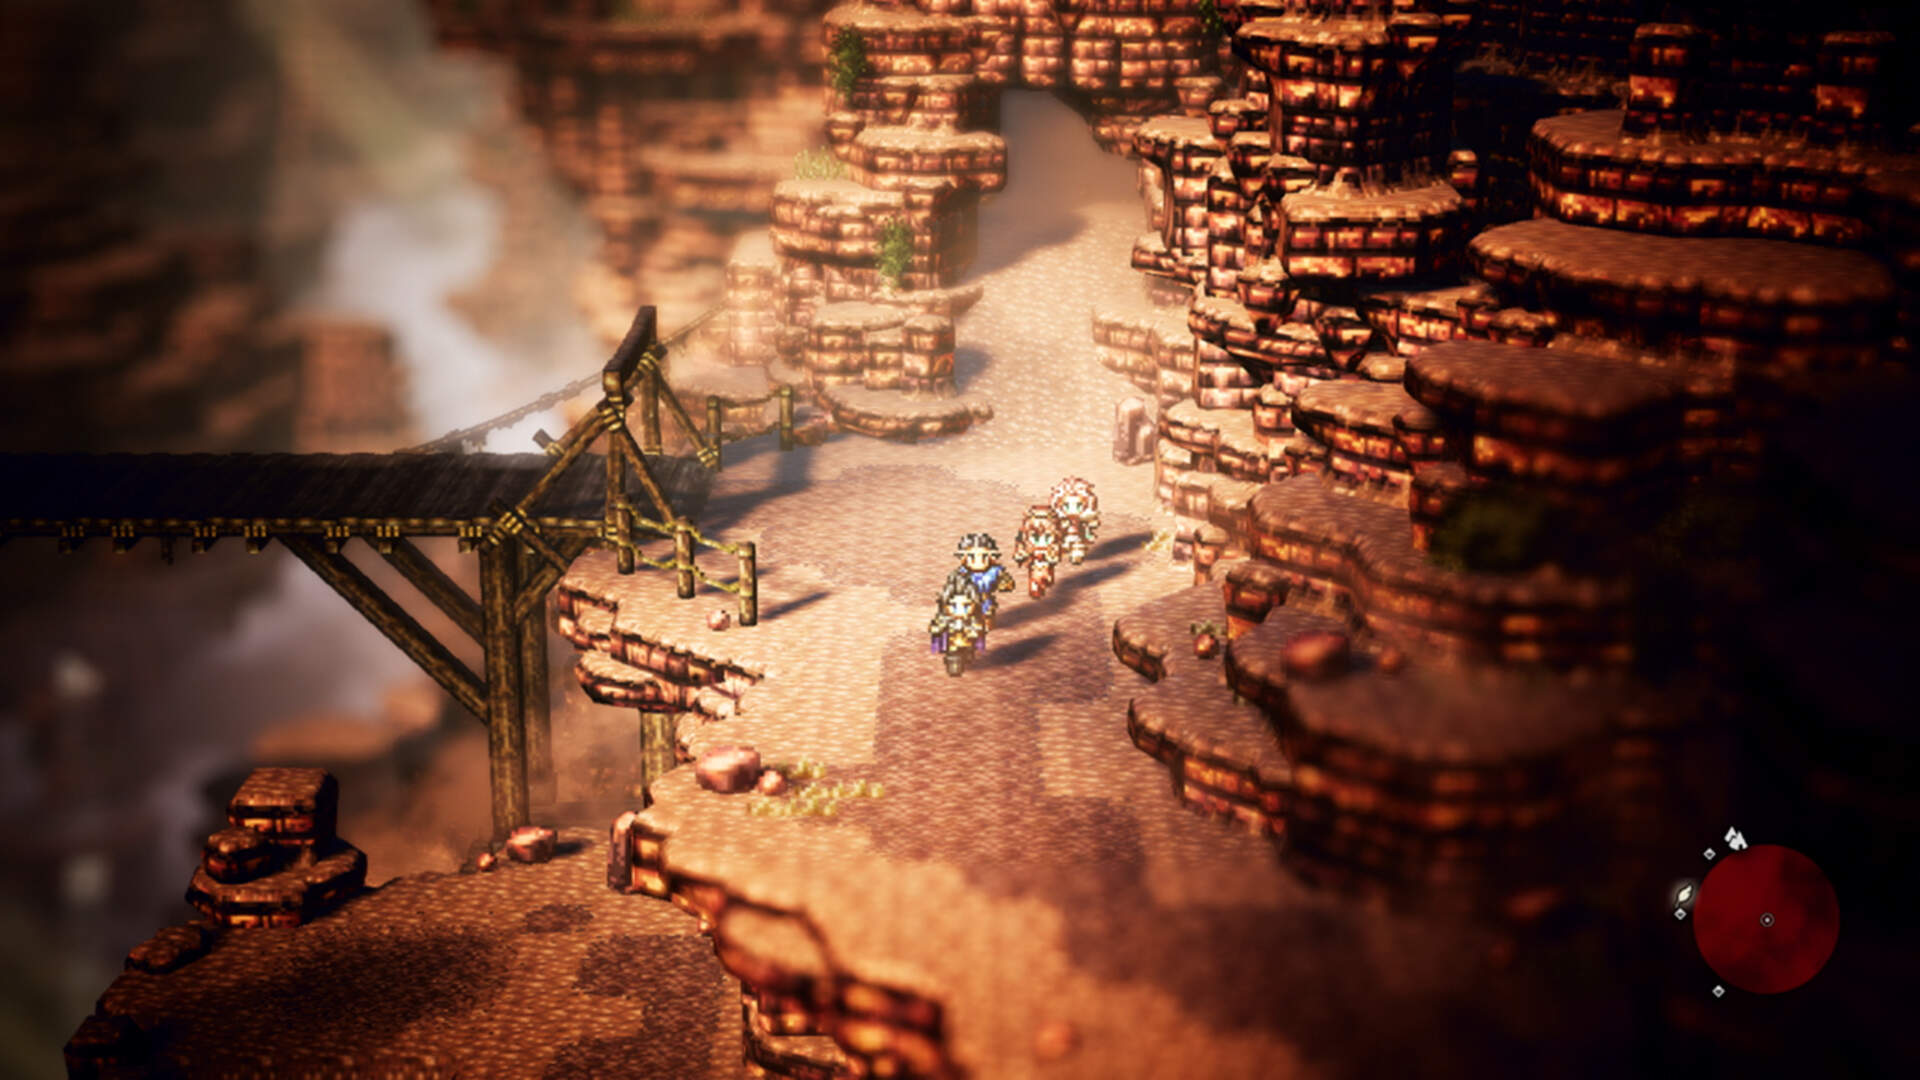 Octopath Traveler, Formerly a Nintendo Switch Exclusive, is Coming to Steam